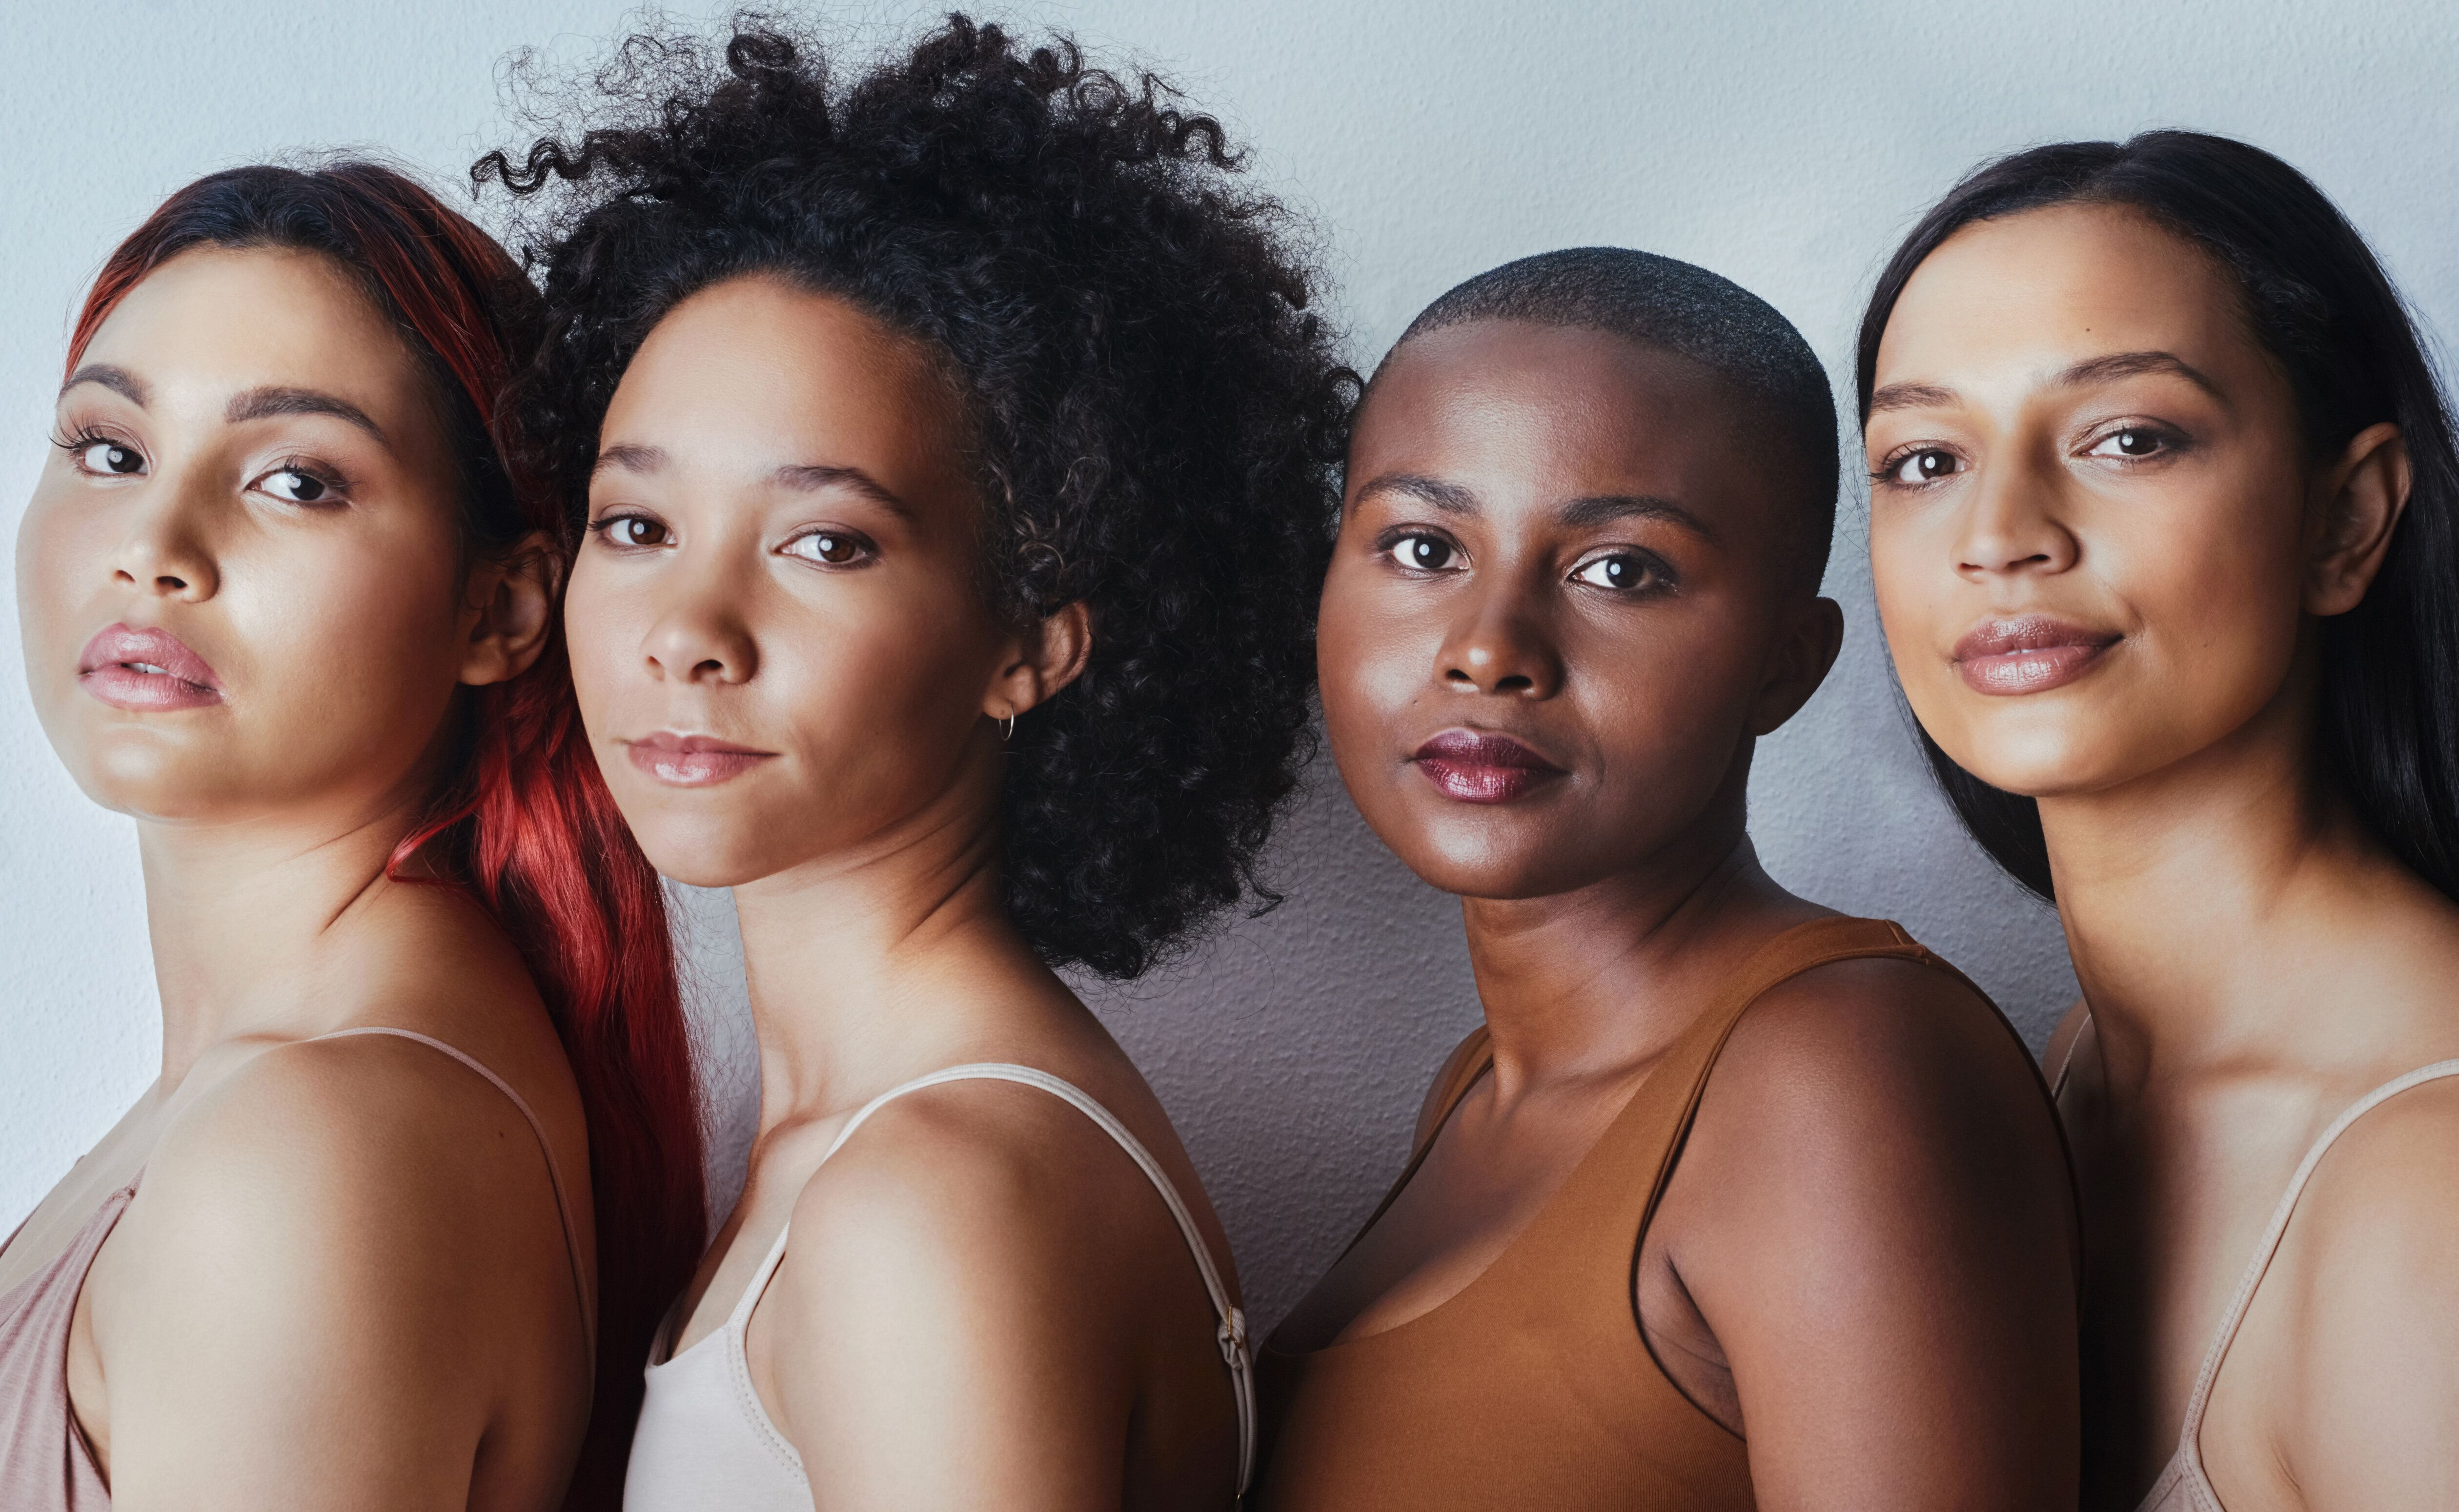 Skin types are more nuanced than the generalized labels of oily, dry, normal and